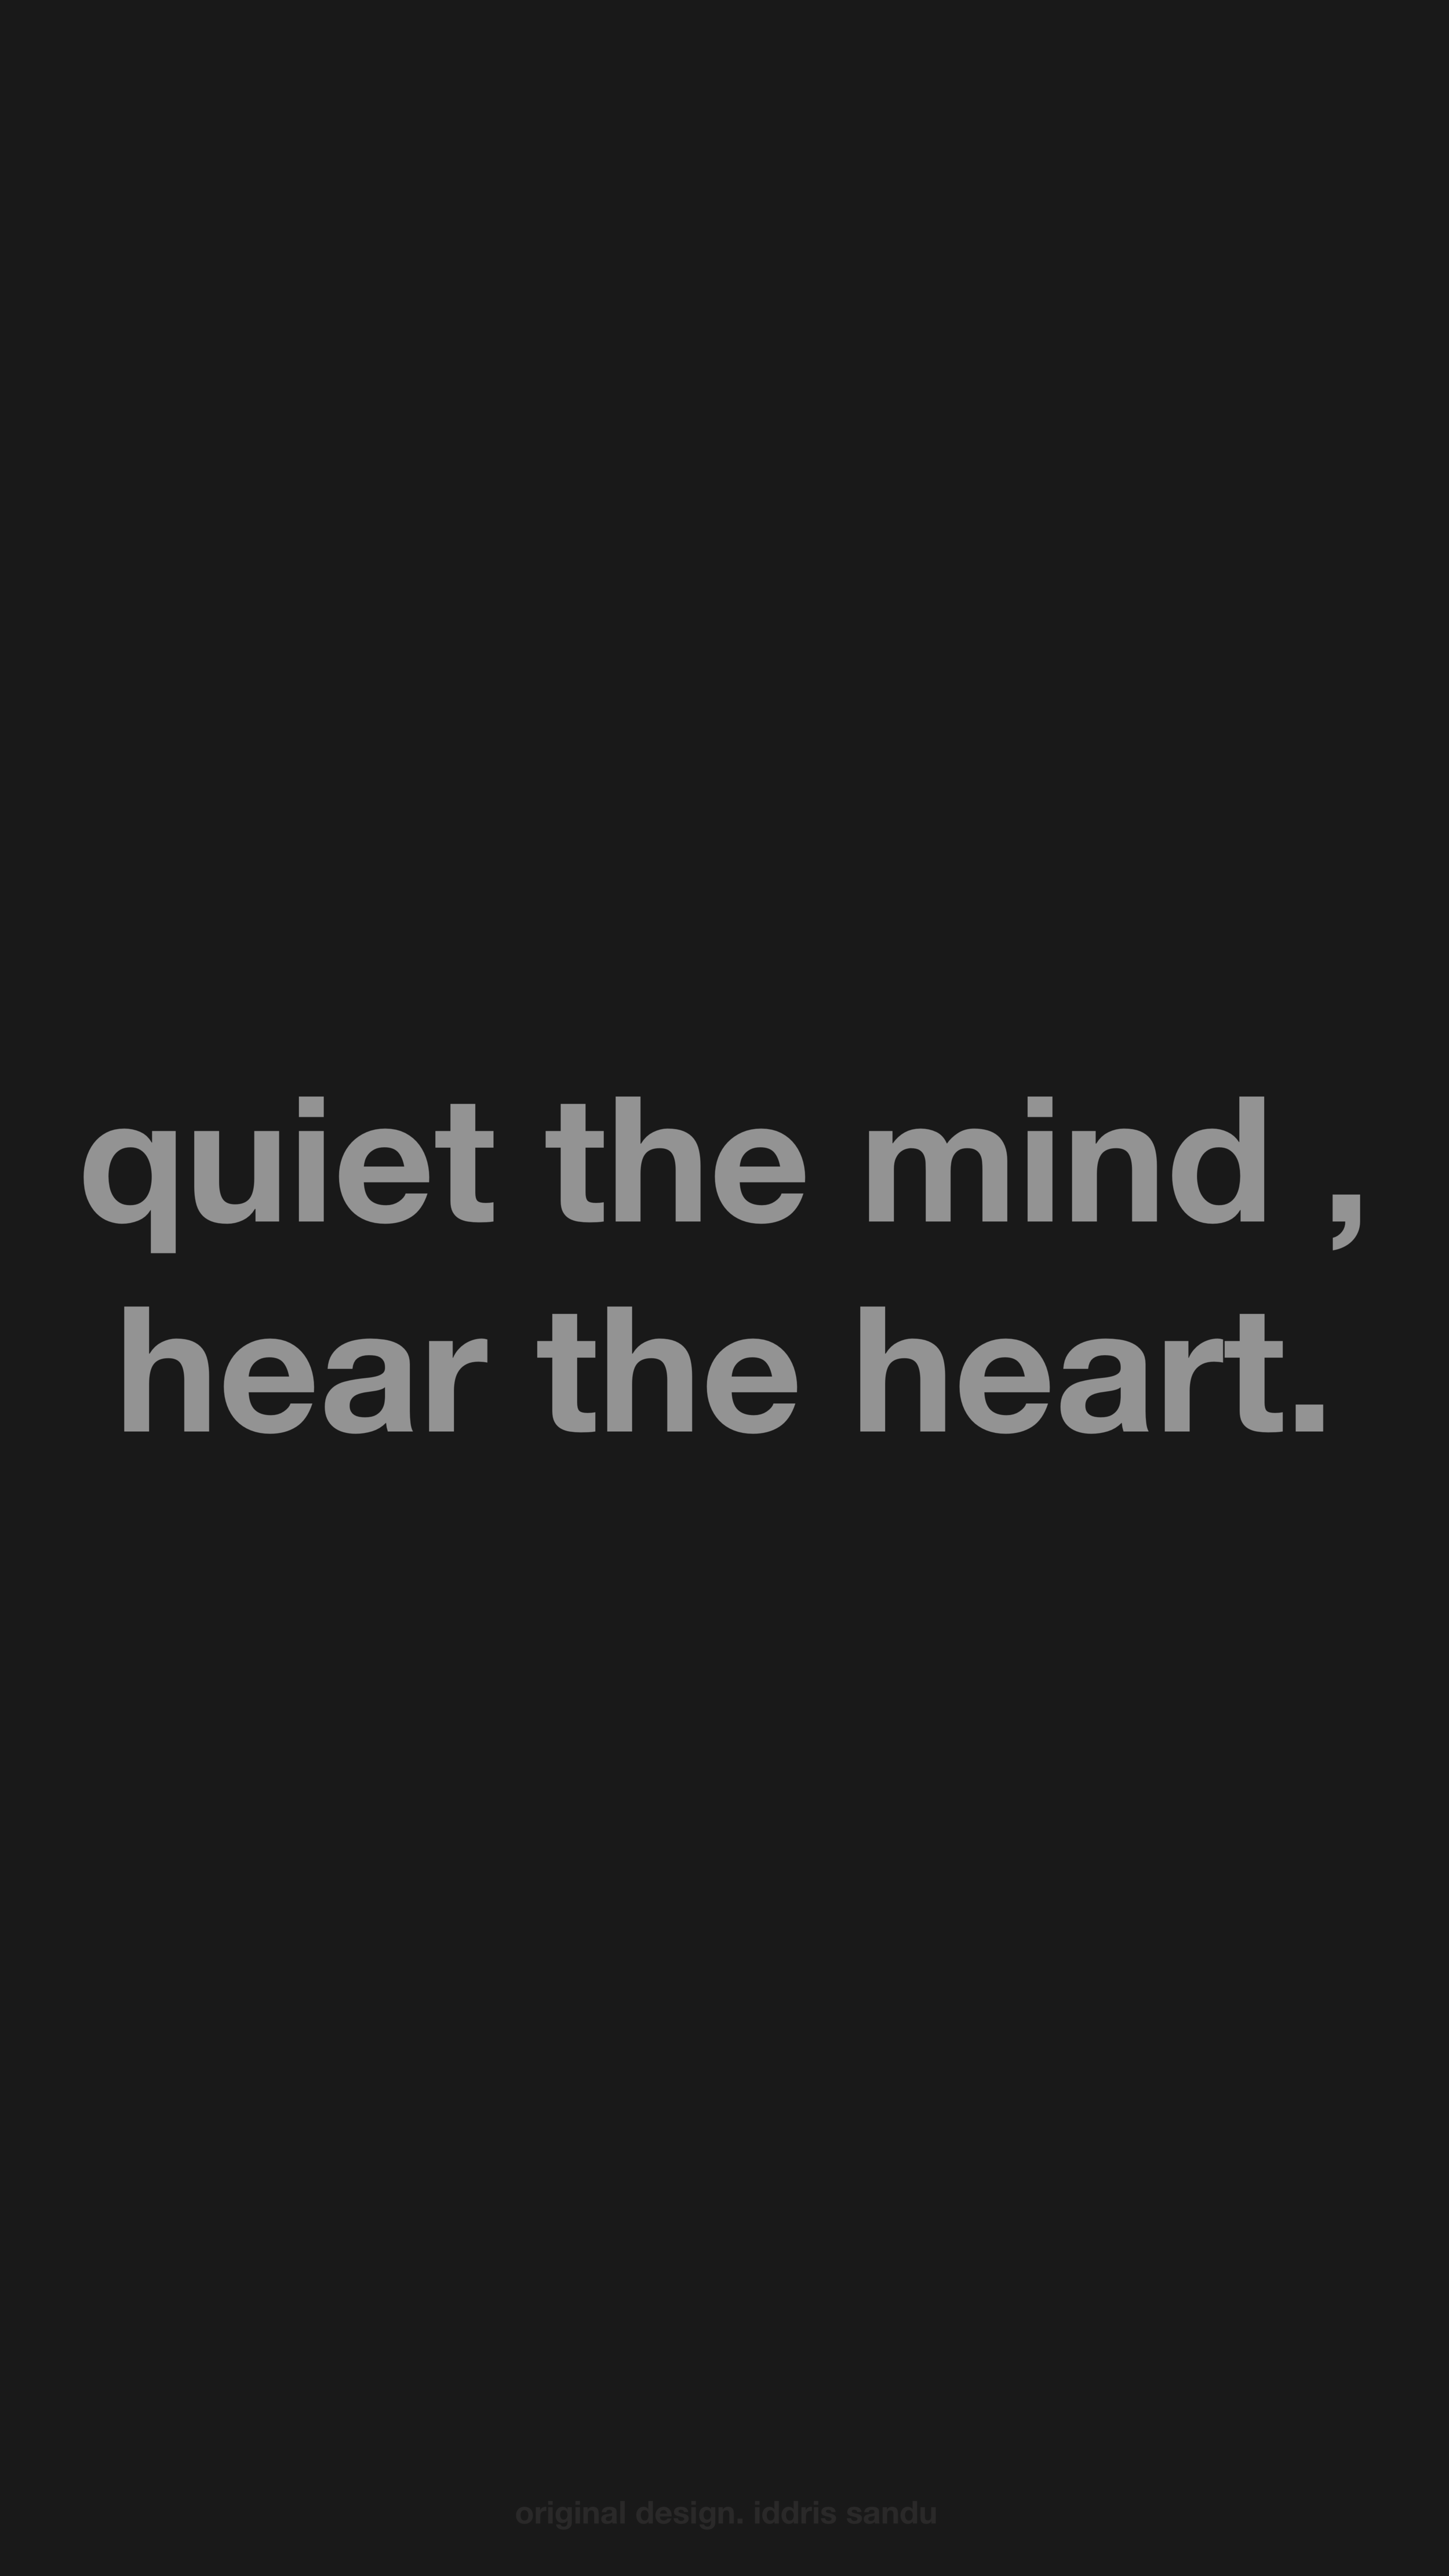 quiet the mind, hear the heart (mobile).png